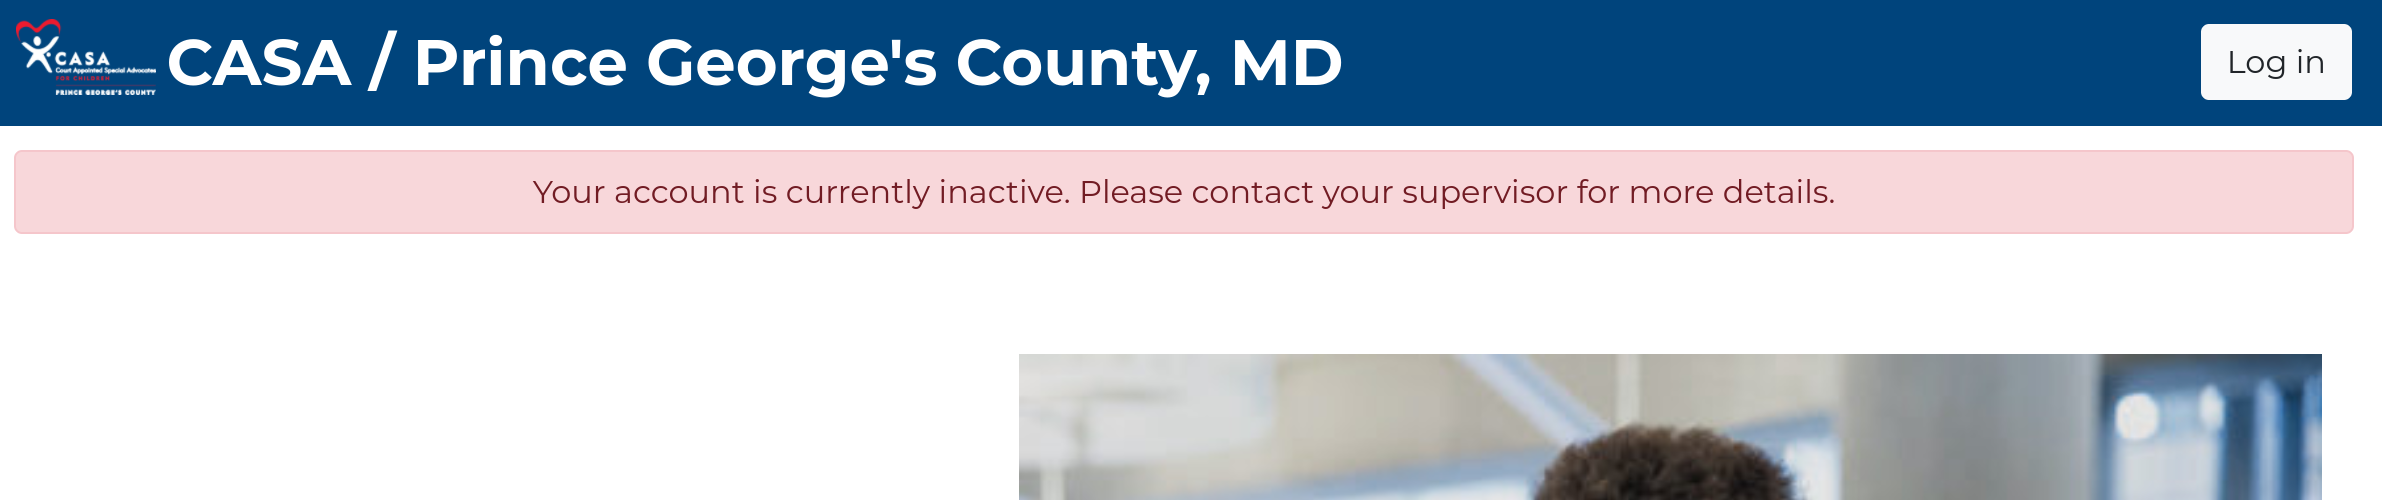 inactive user message